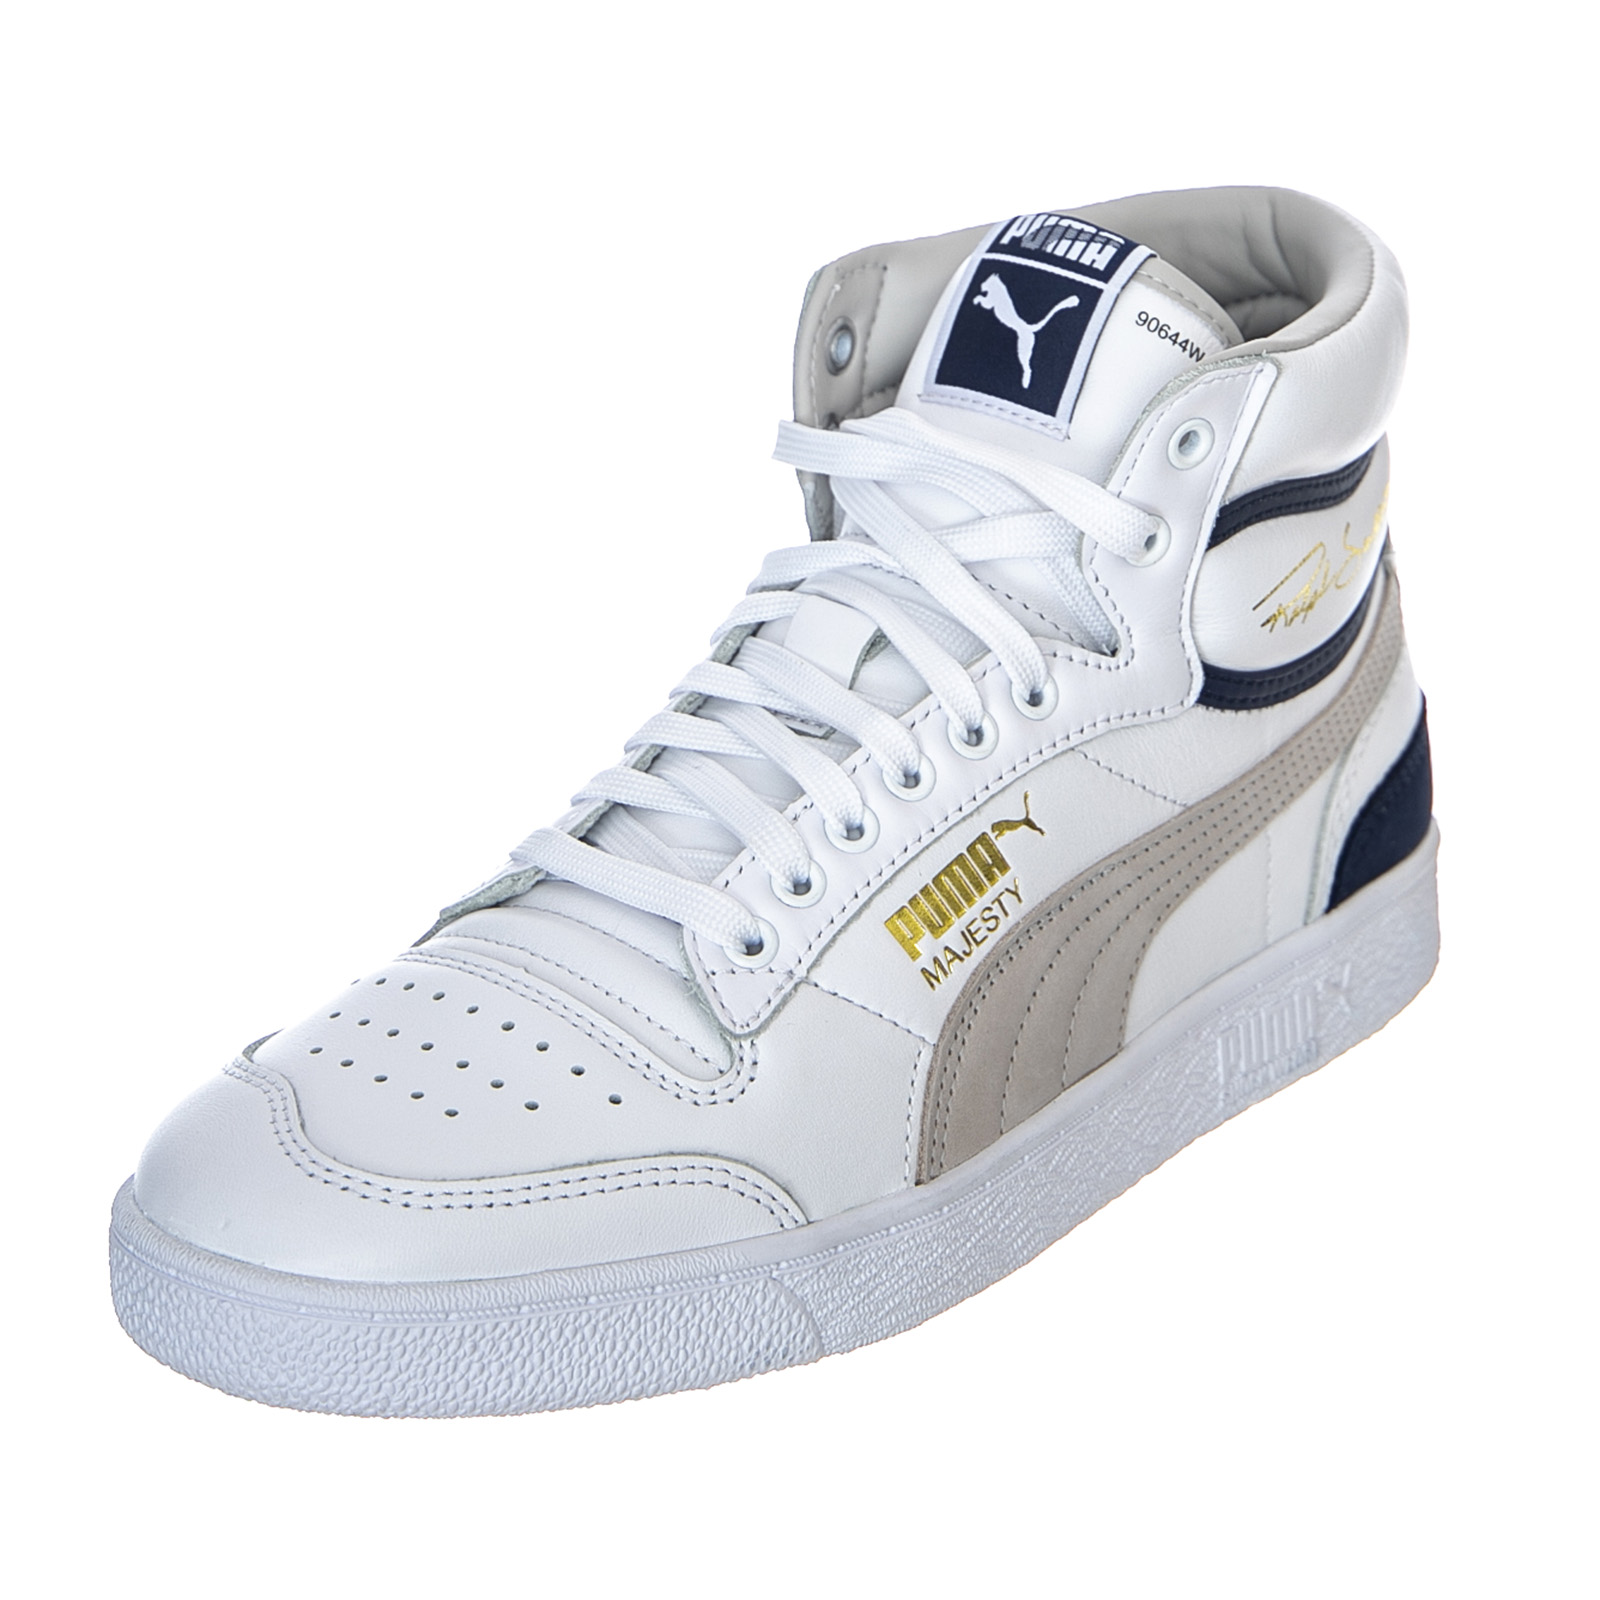 Details about Puma Ralph Sampson mid Og WhiteGreyViolet Peacoat High Sneakers